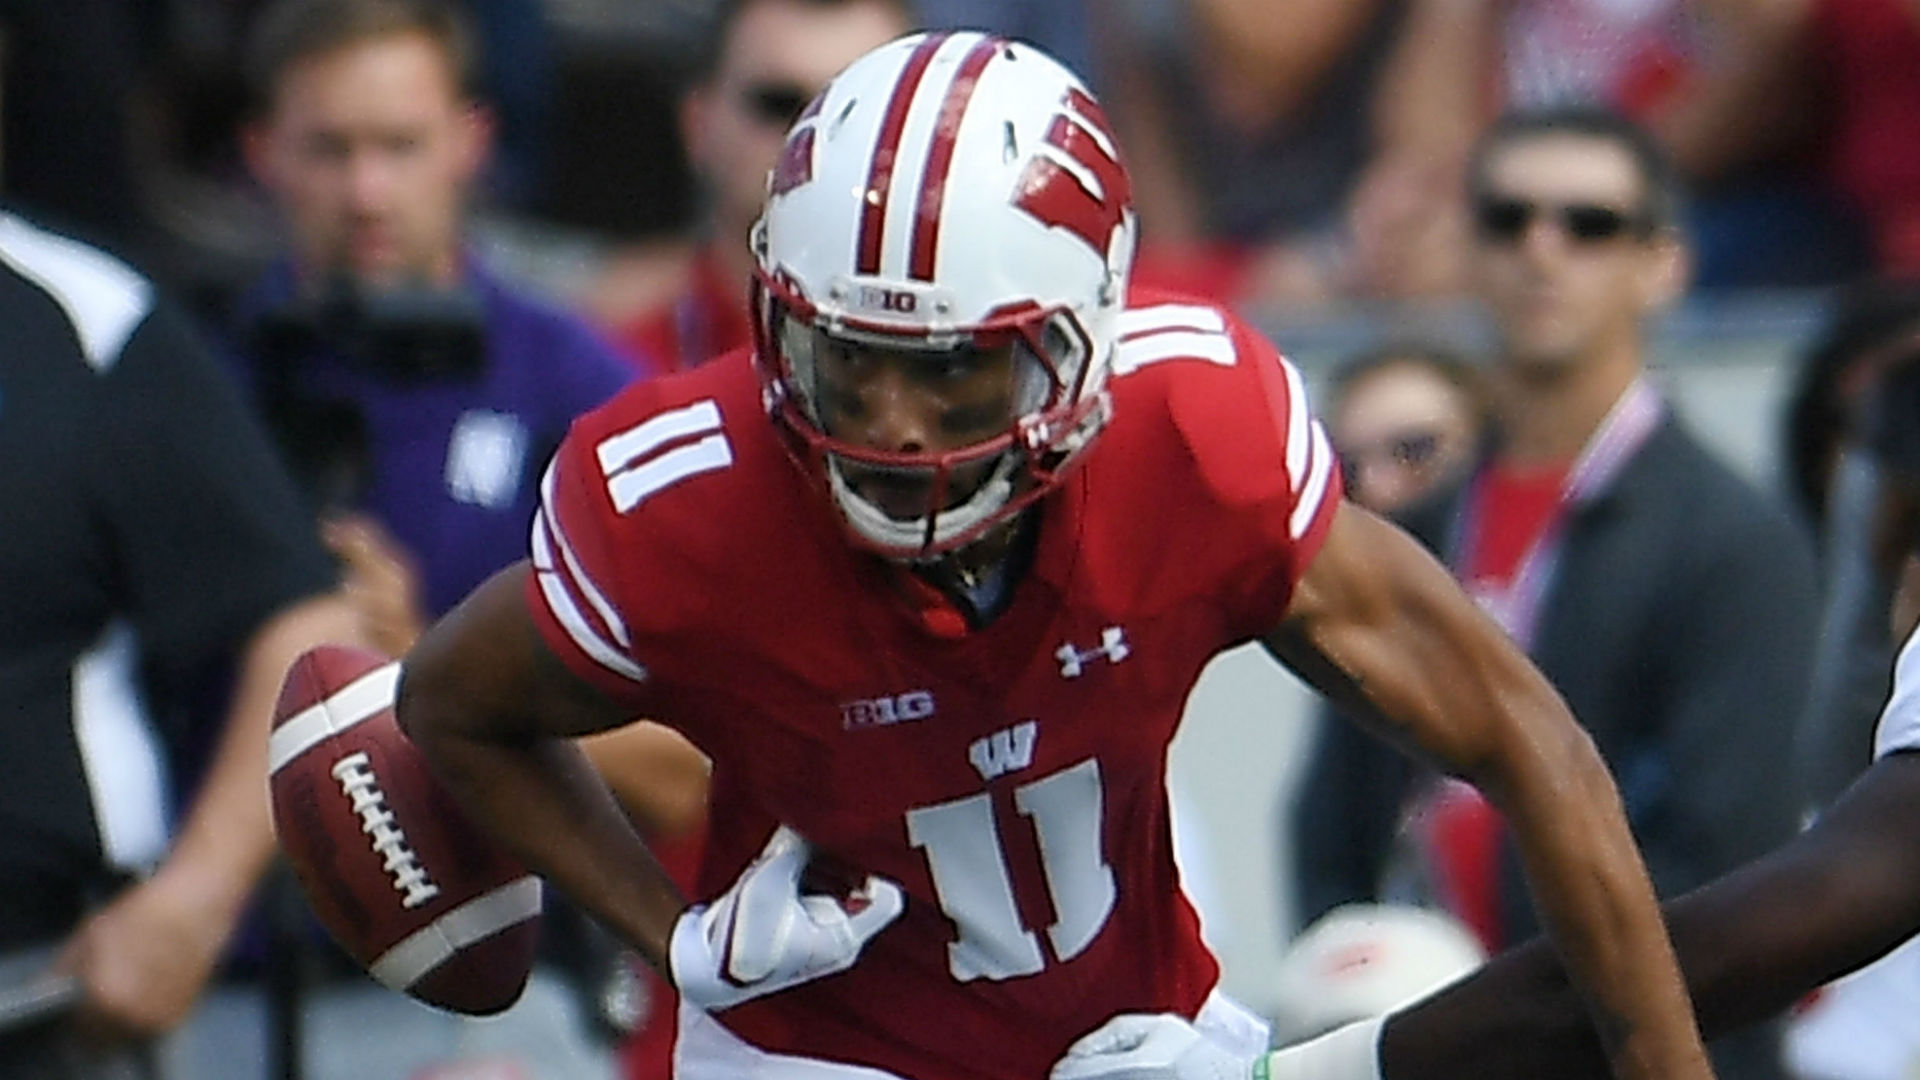 No. 5 Wisconsin dealing with several injuries ahead of clash with No. 19 Michigan